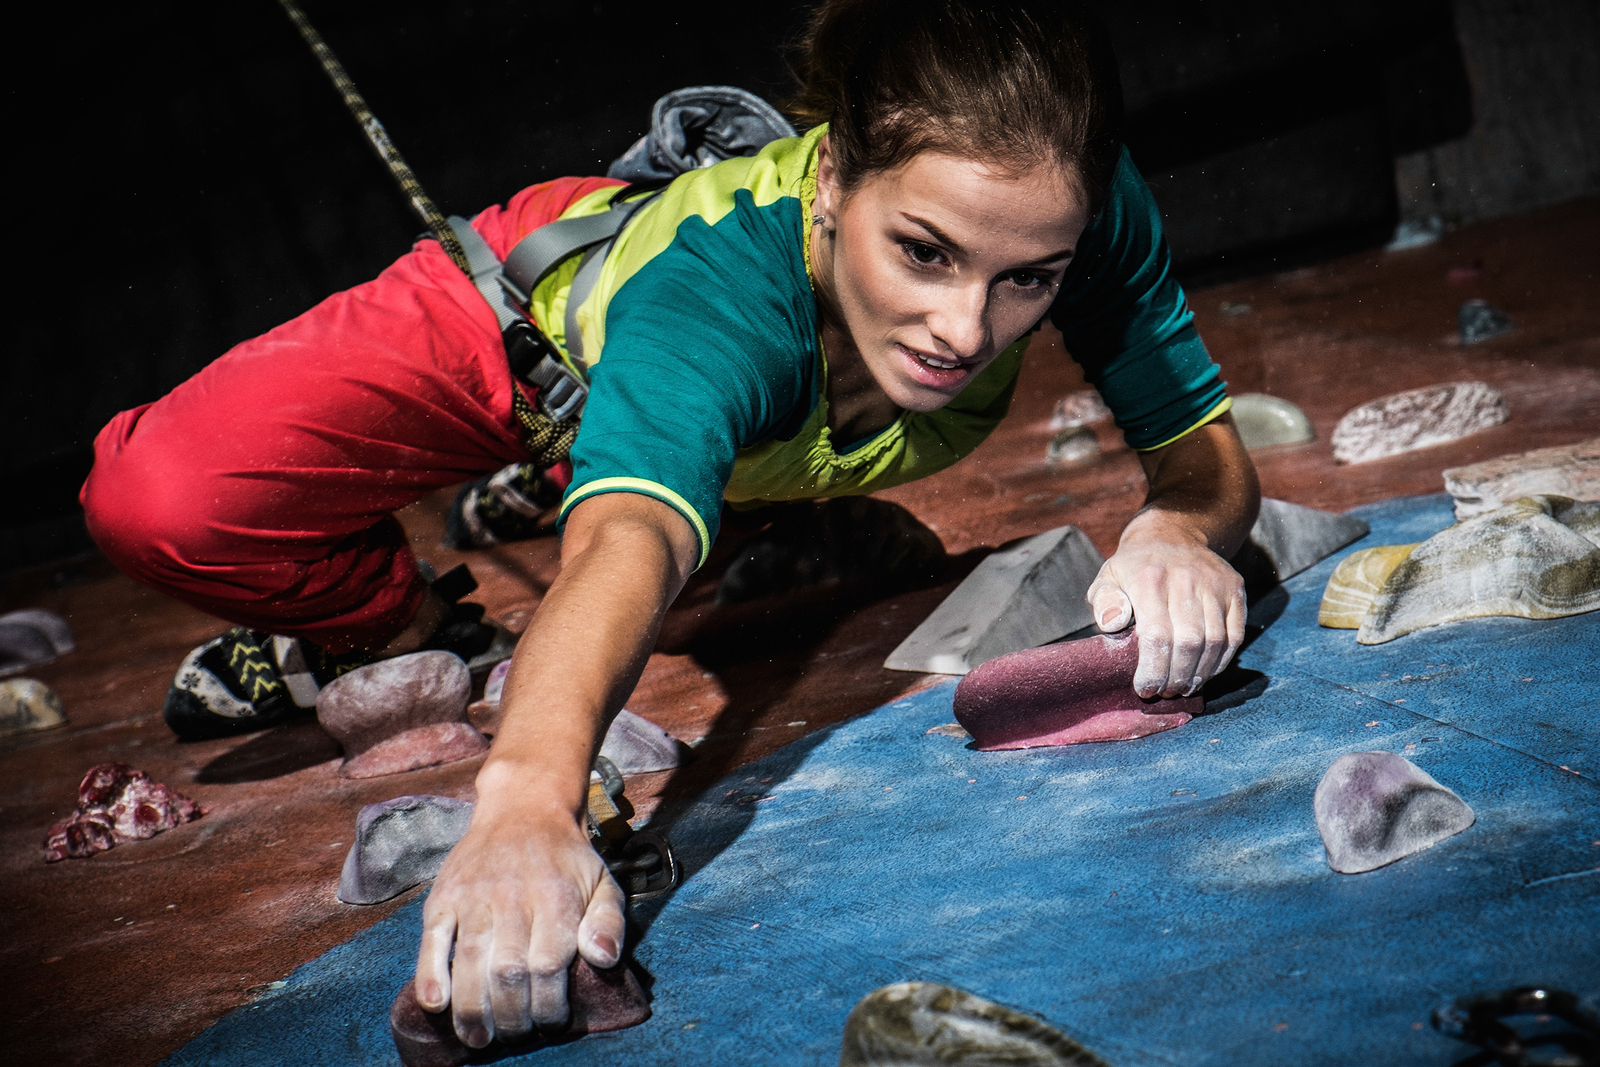 Climber's Home Treatment for Finger Injury